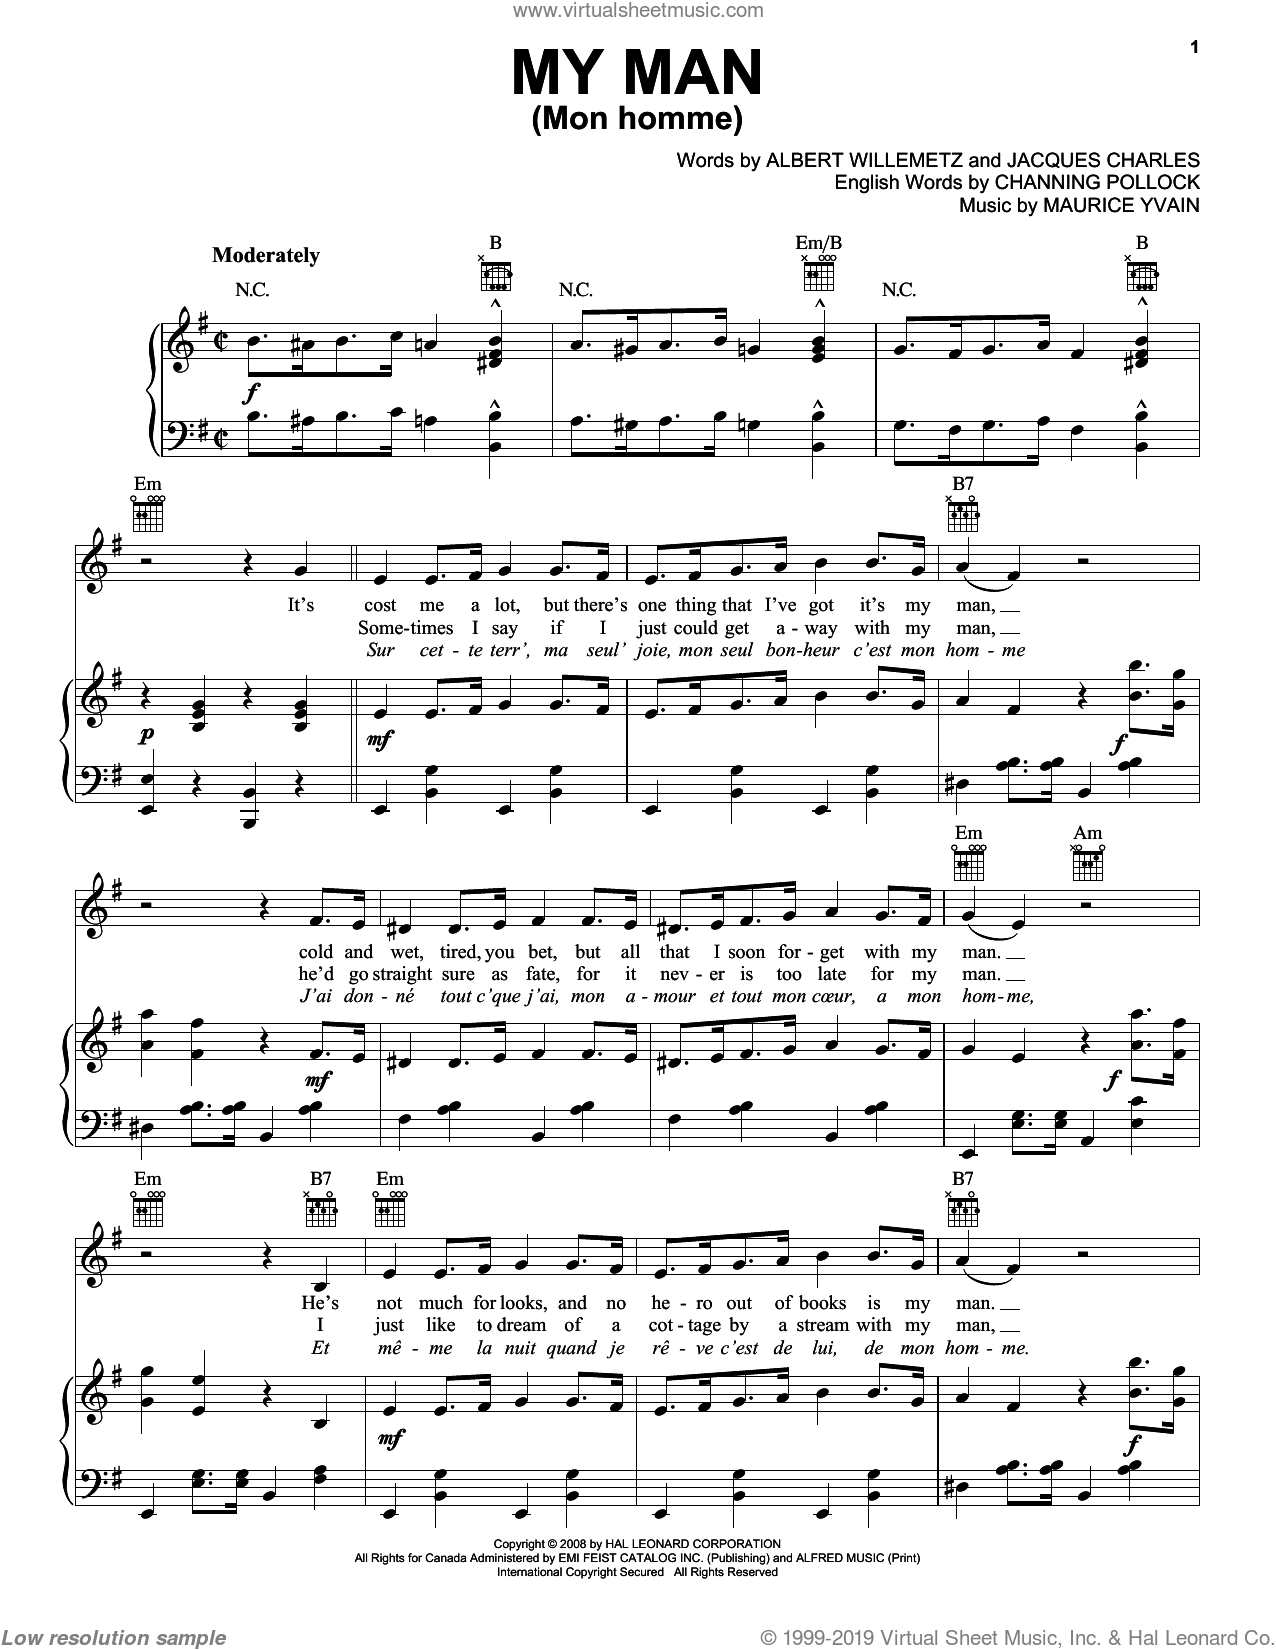 My Man (Mon Homme) sheet music for voice, piano or guitar by Jacques Charles, Albert Willemetz and Channing Pollock. Score Image Preview.